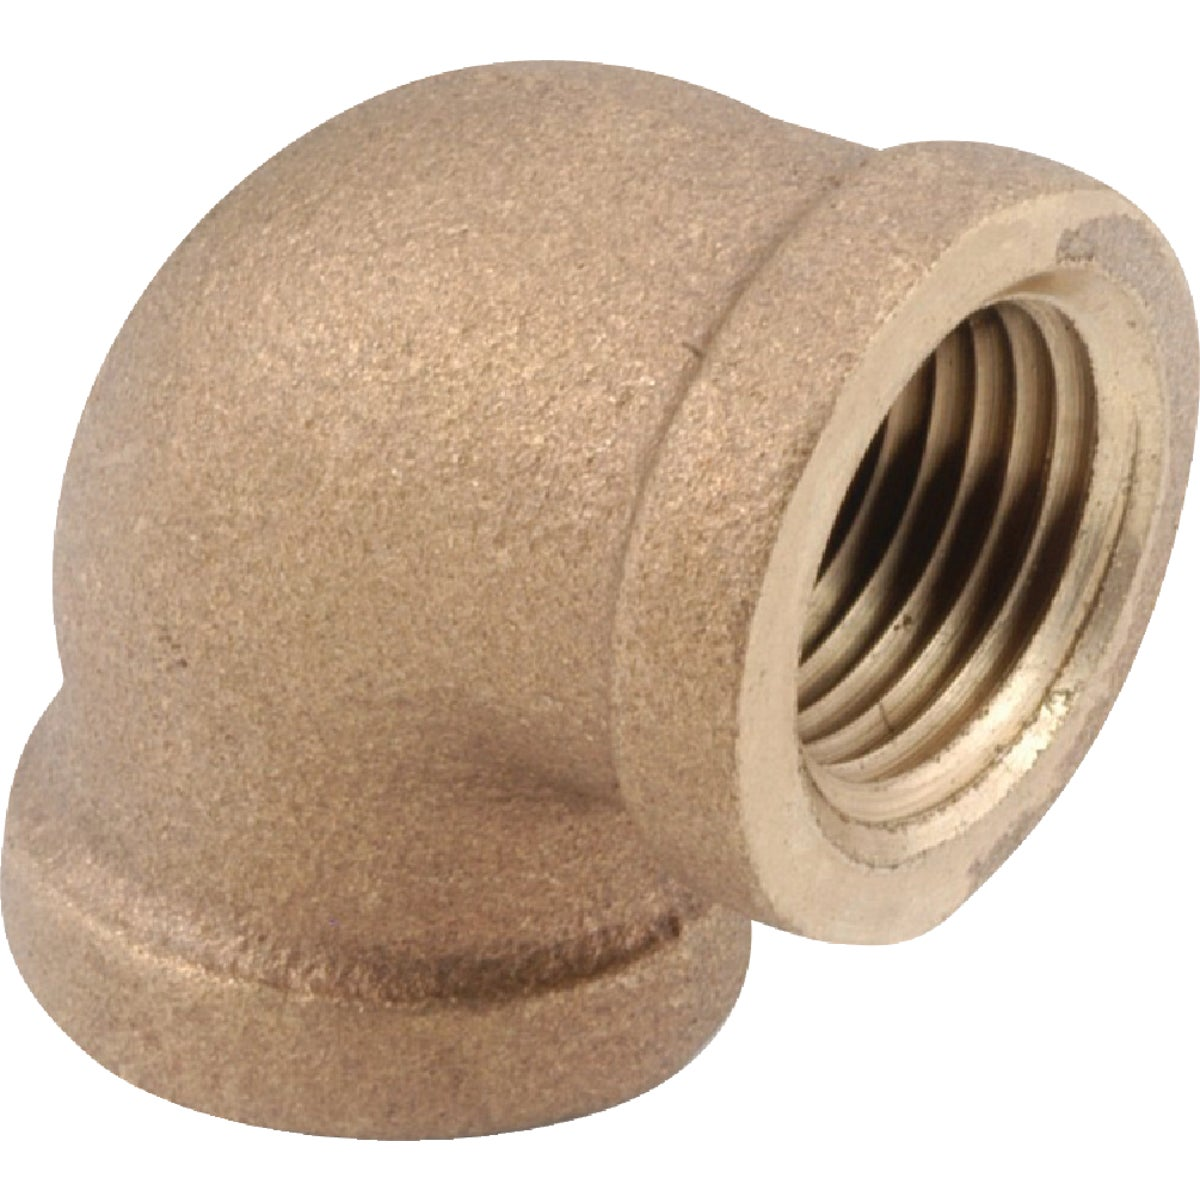 "3/4"" 90D BRASS ELBOW - 738100-12 by Anderson Metals Corp"